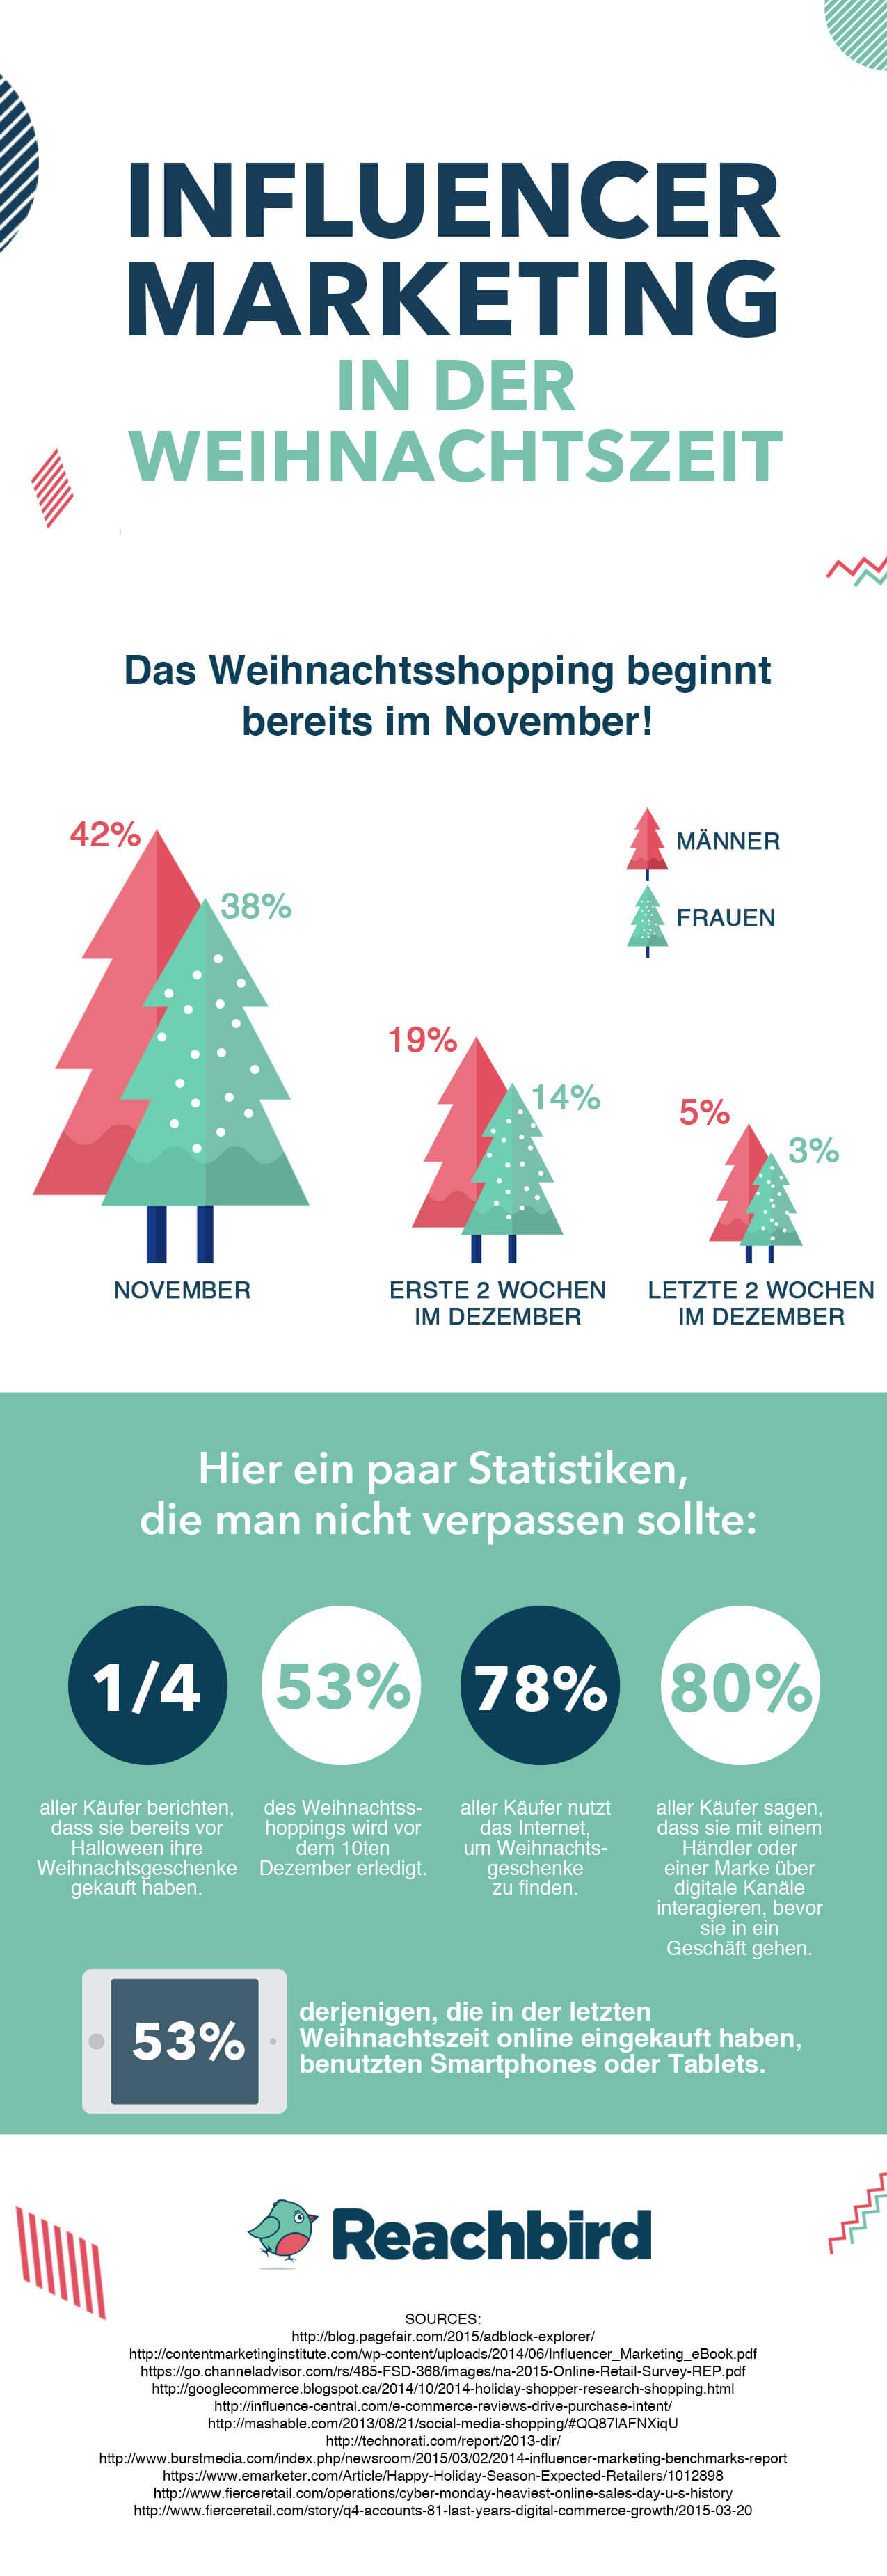 INFLUENCER MARKETING IN DER WEIHNACHTSZEIT